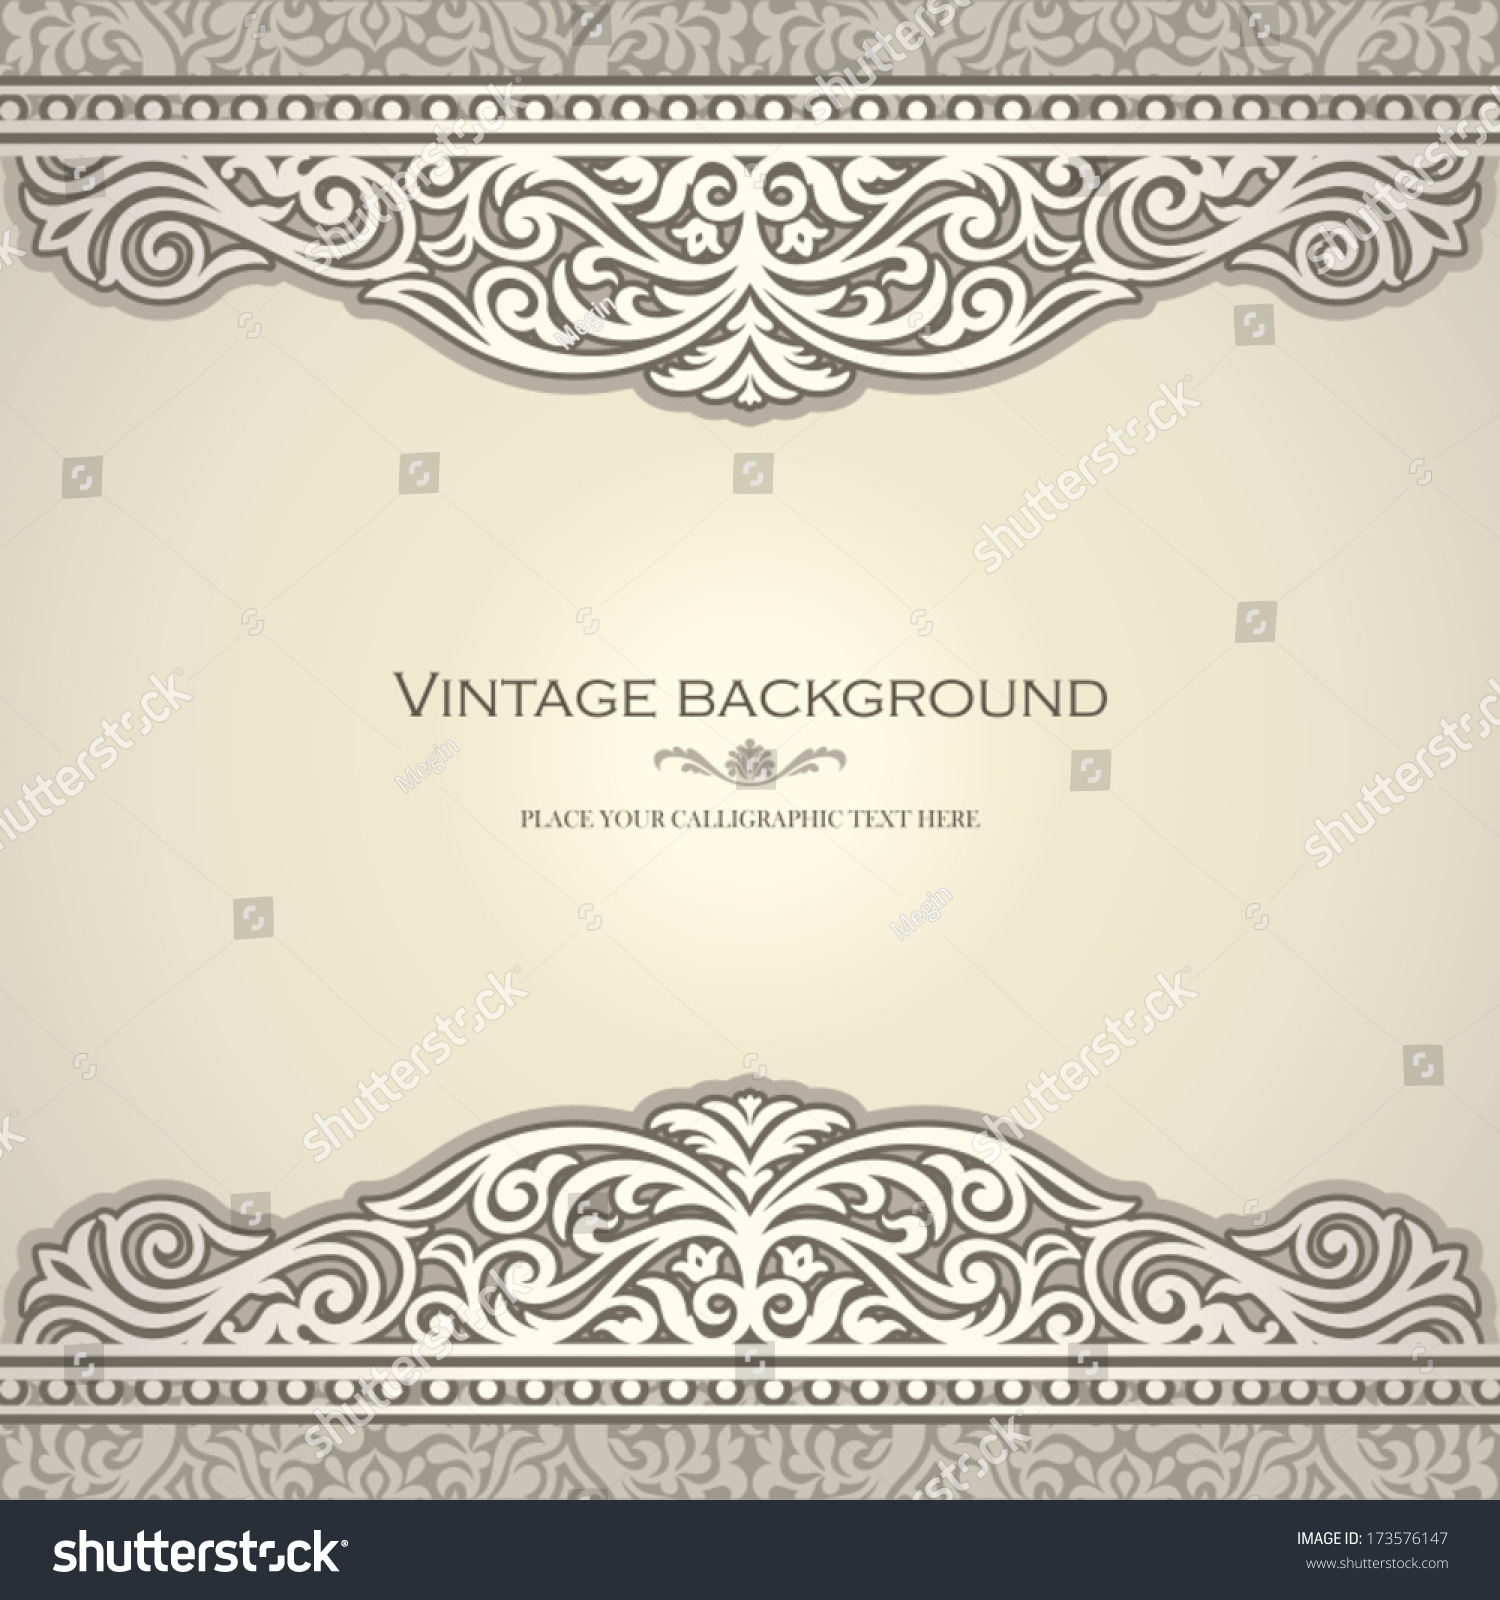 Vintage Book Cover Invitations ~ Vintage background design elegant book cover stock vector